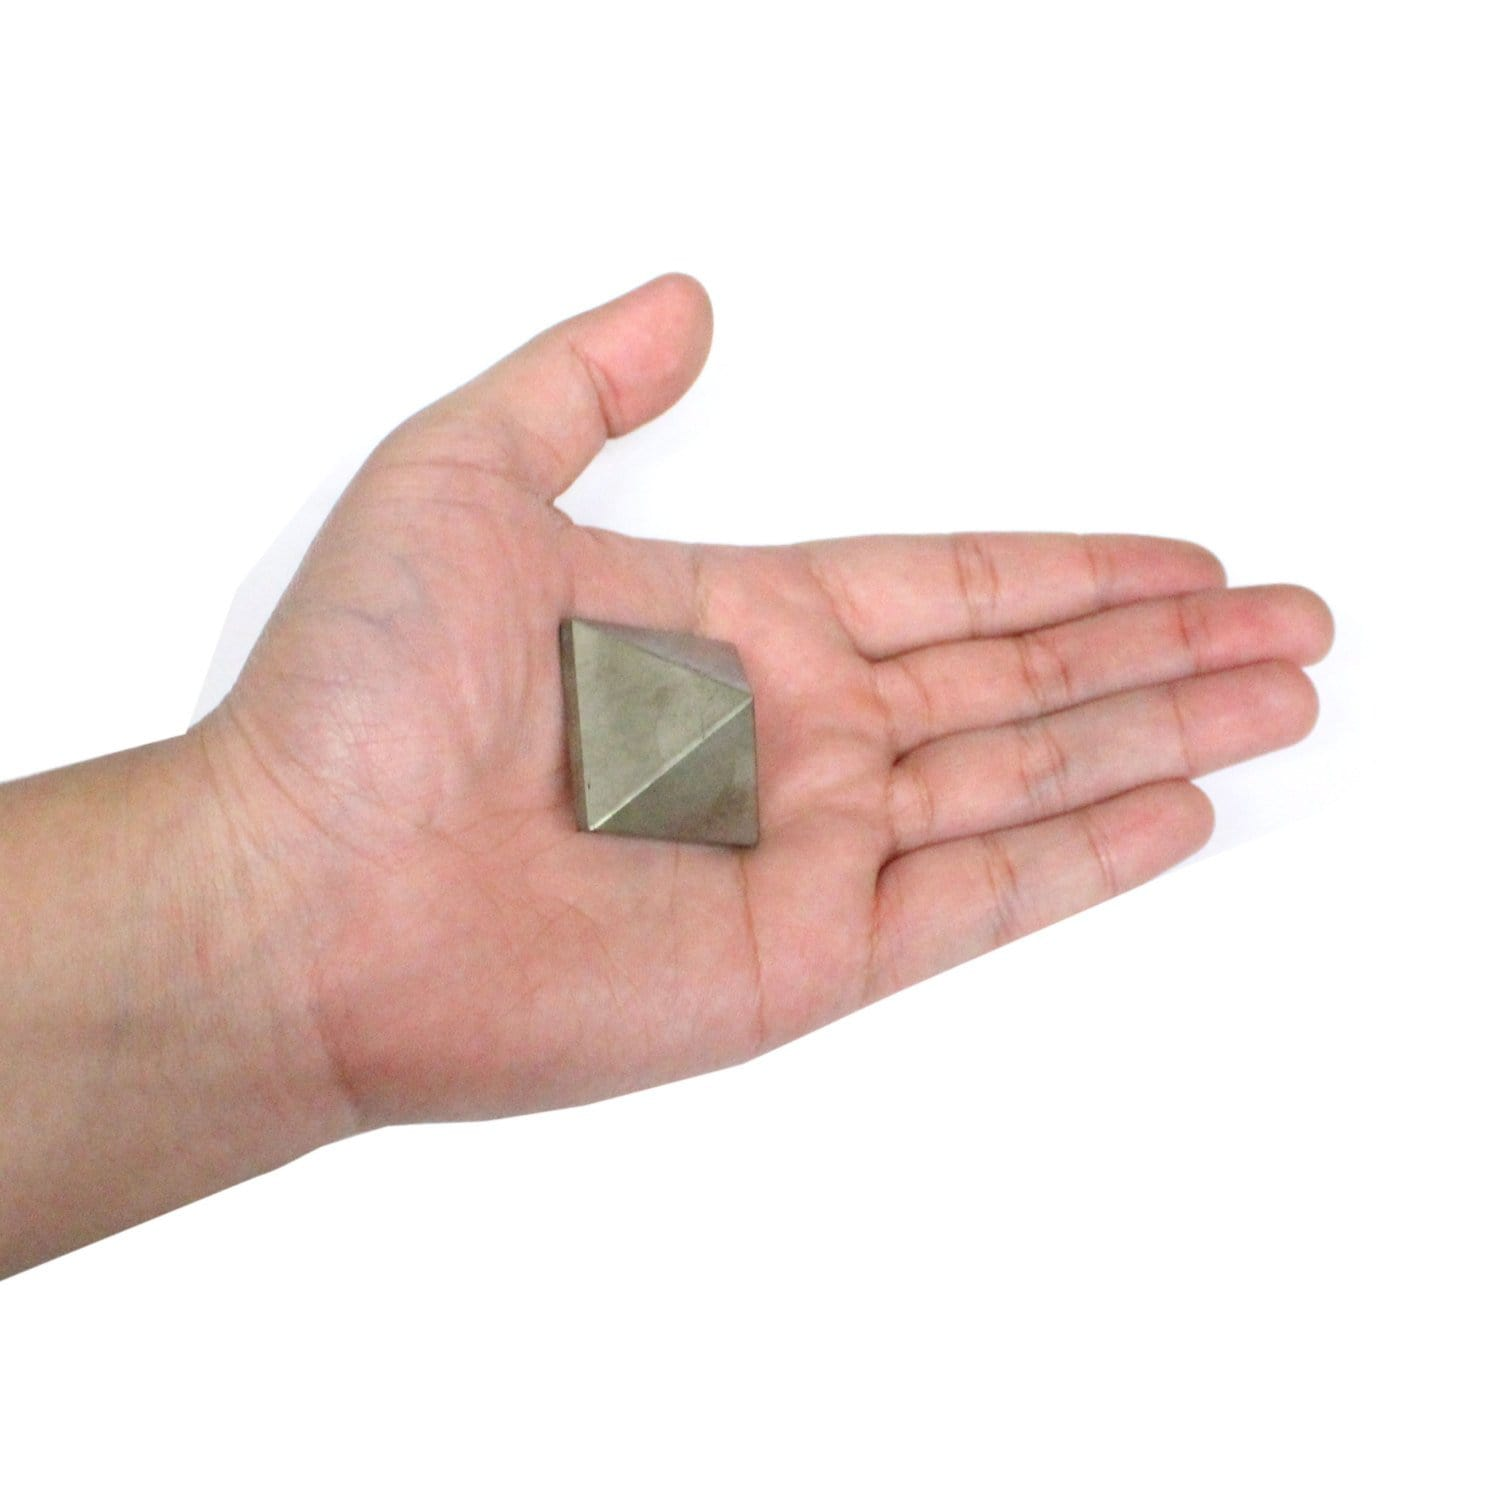 Chakra Pyramid - Pyrite Pyramid -- Pyramid Shaped Pyrite Stone - Reiki - Metaphysical - Crafting - Crystal Grid RK64B15